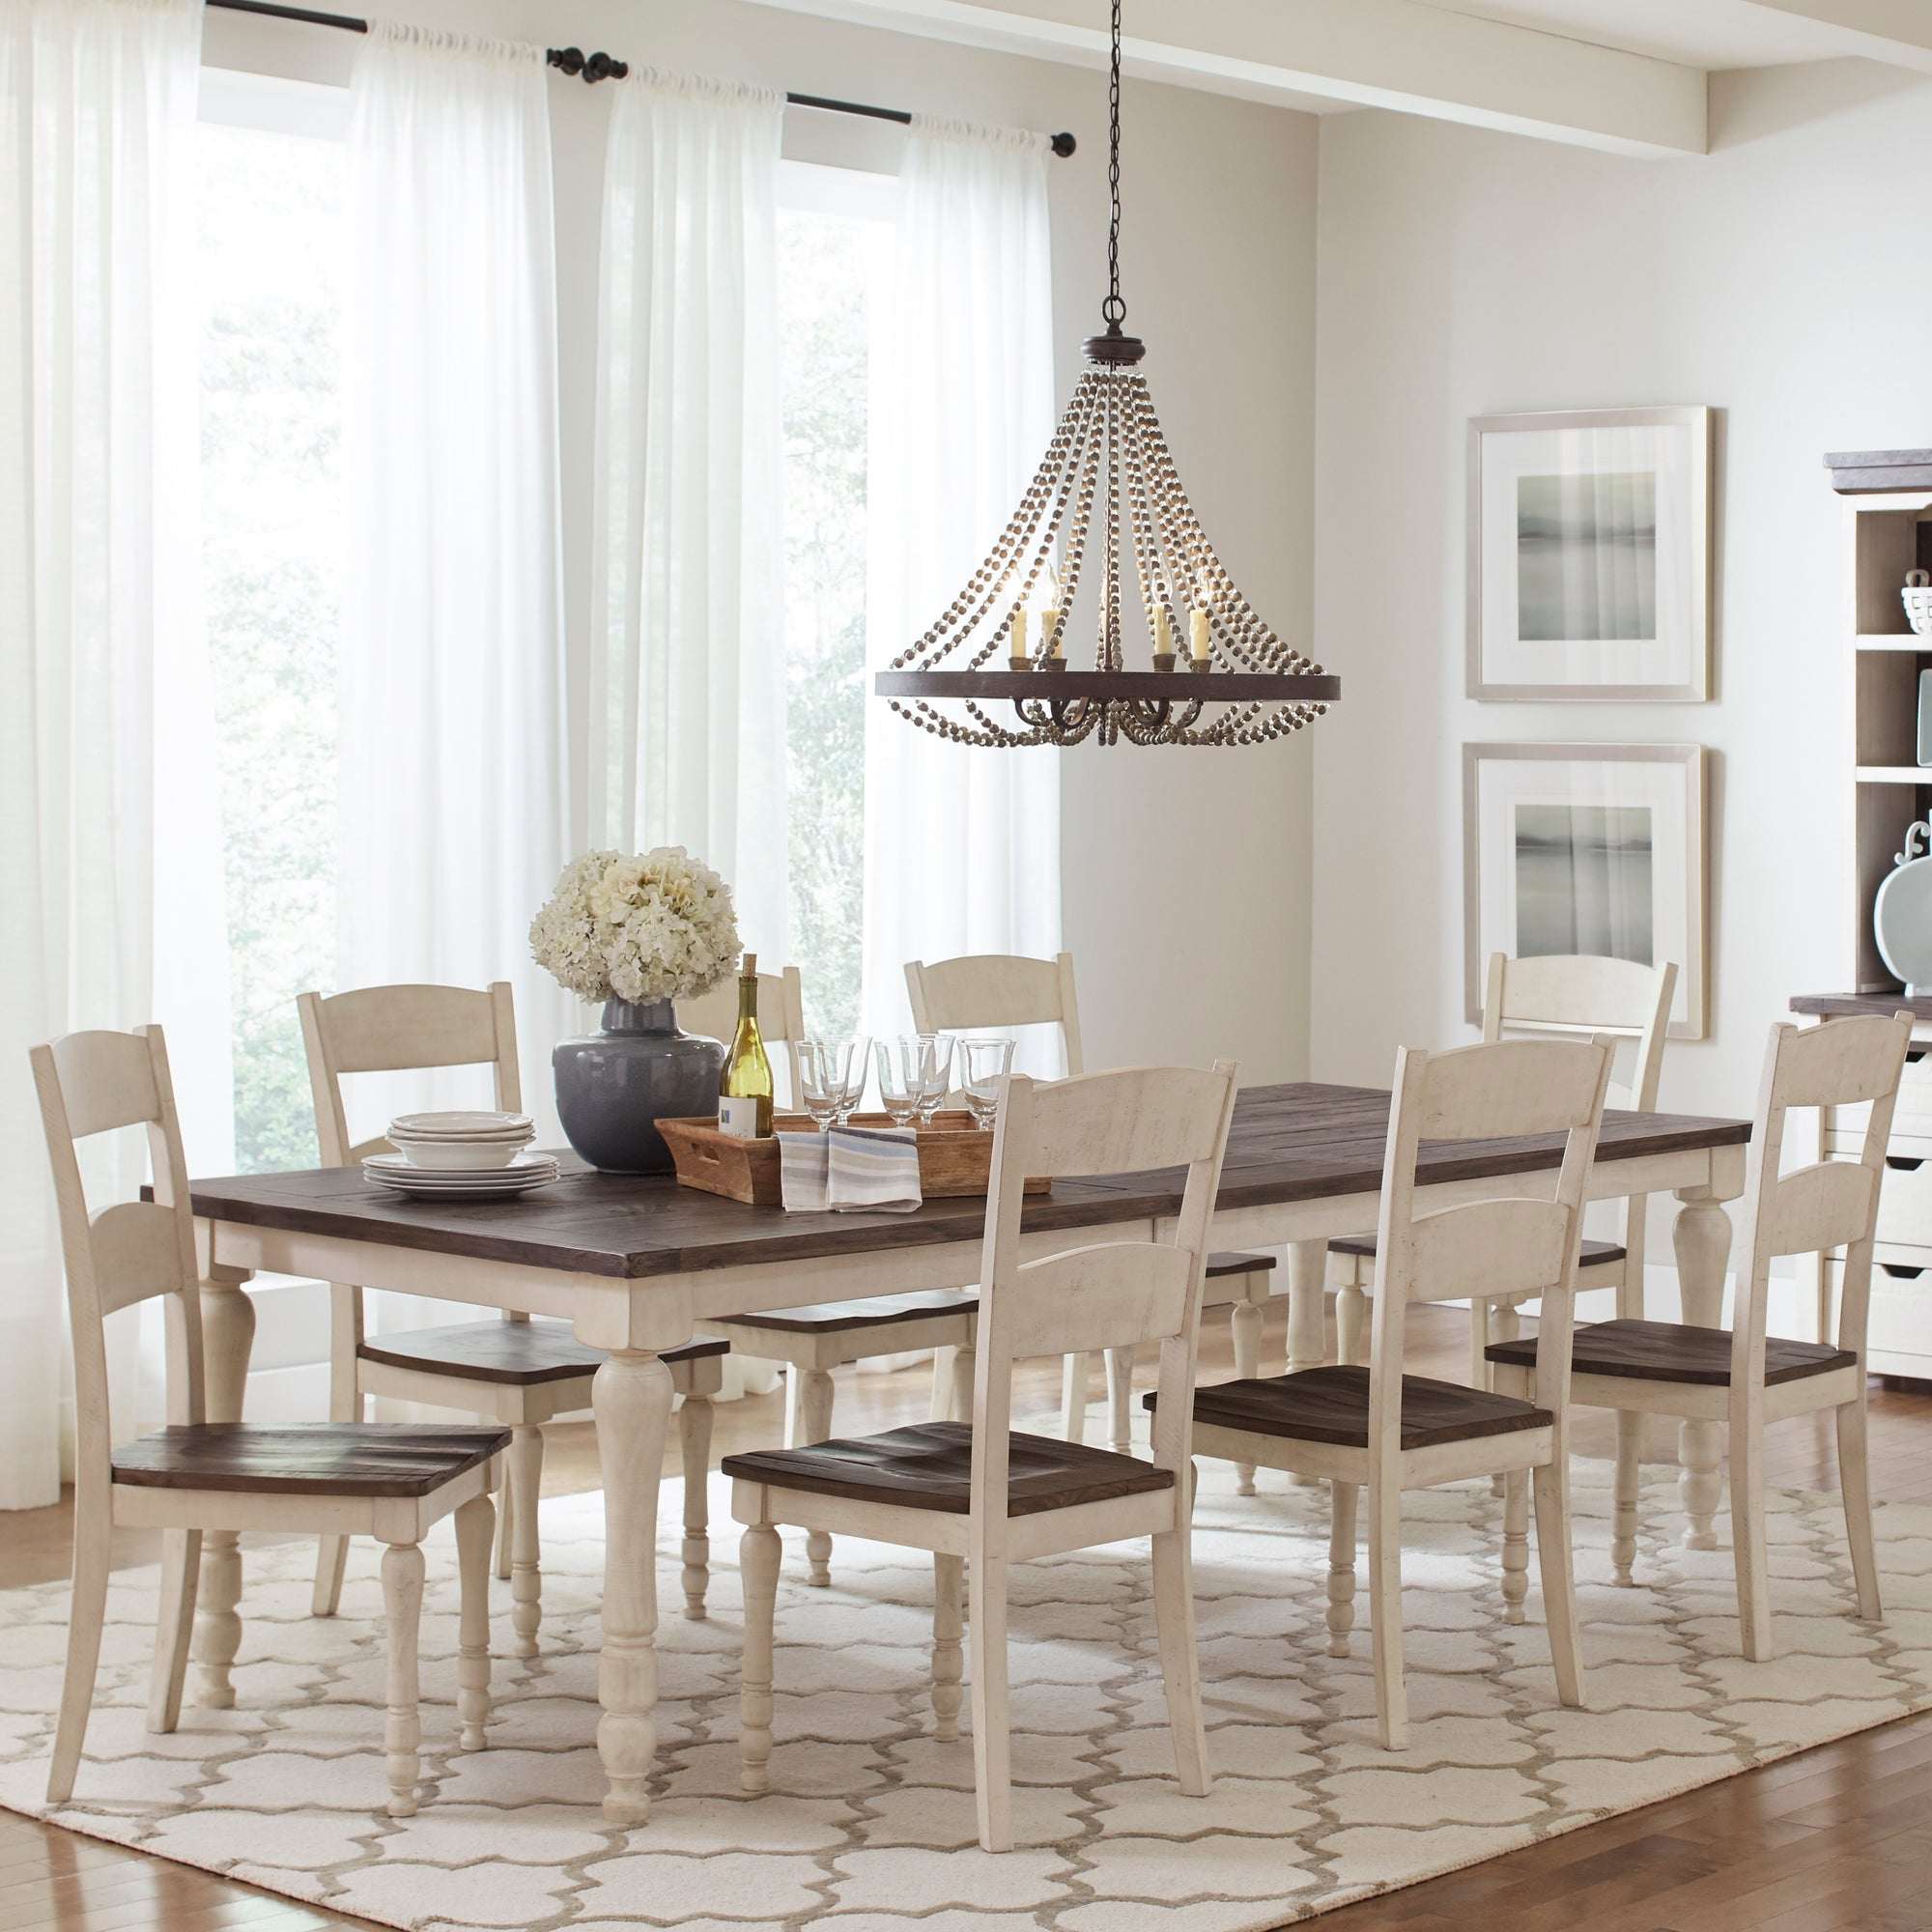 Urban Loft 7-Piece Extendable Dining Set